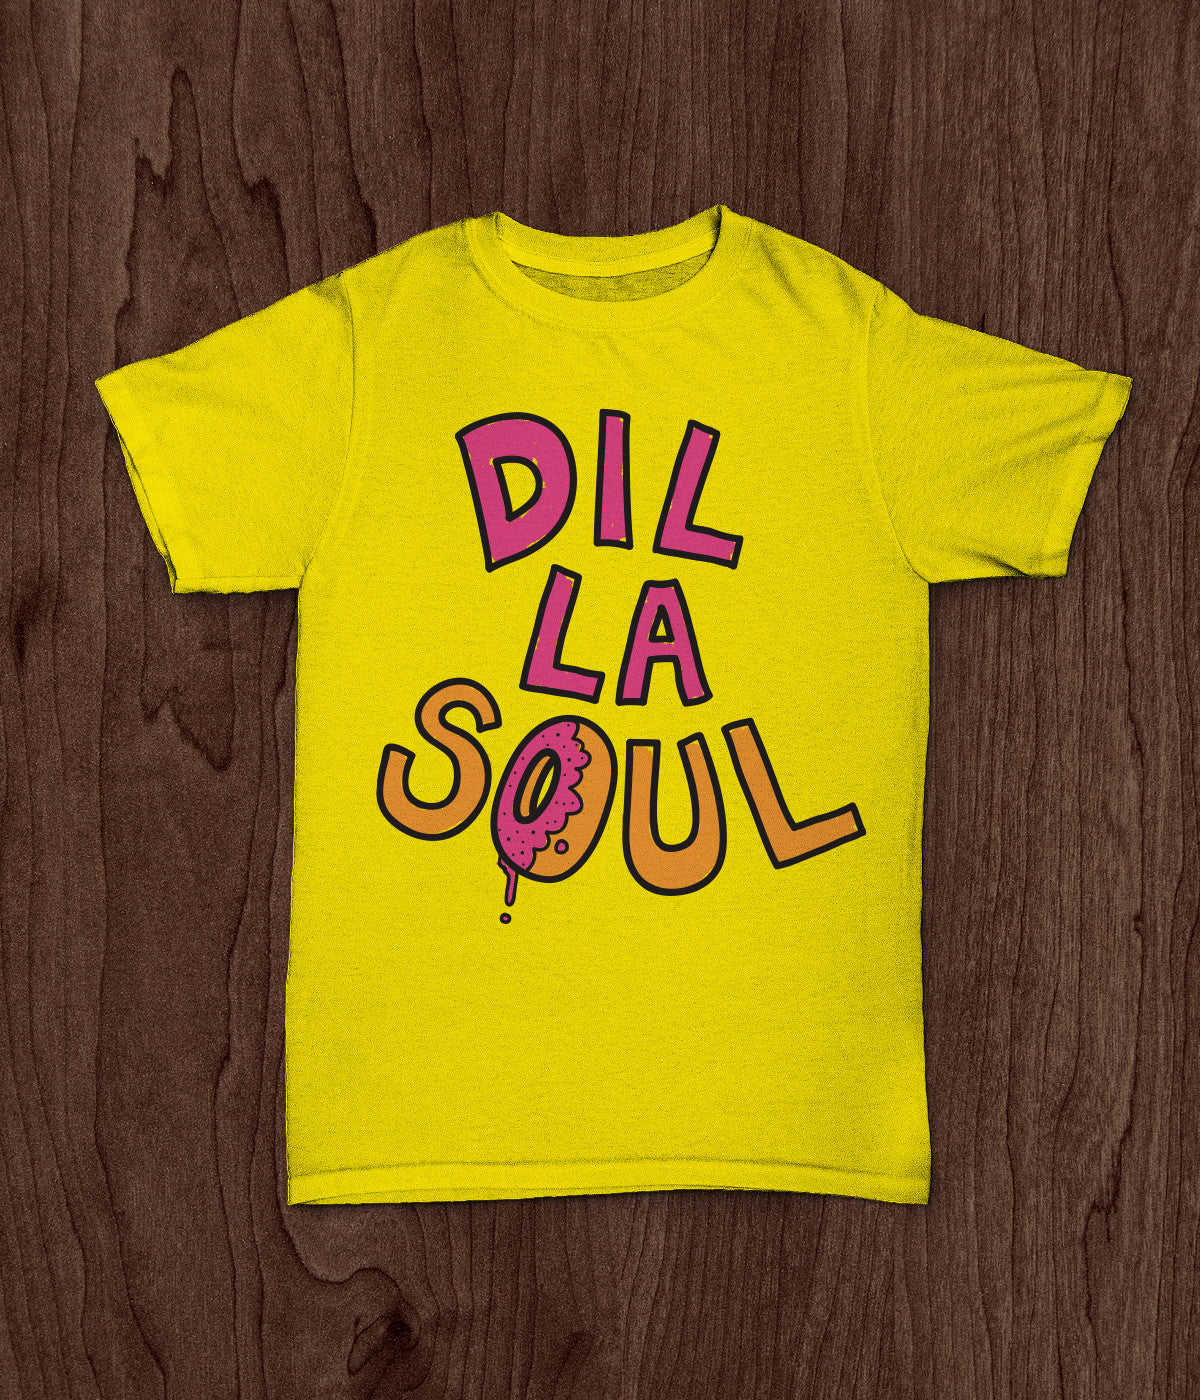 DIL LA SOUL (5 colors)